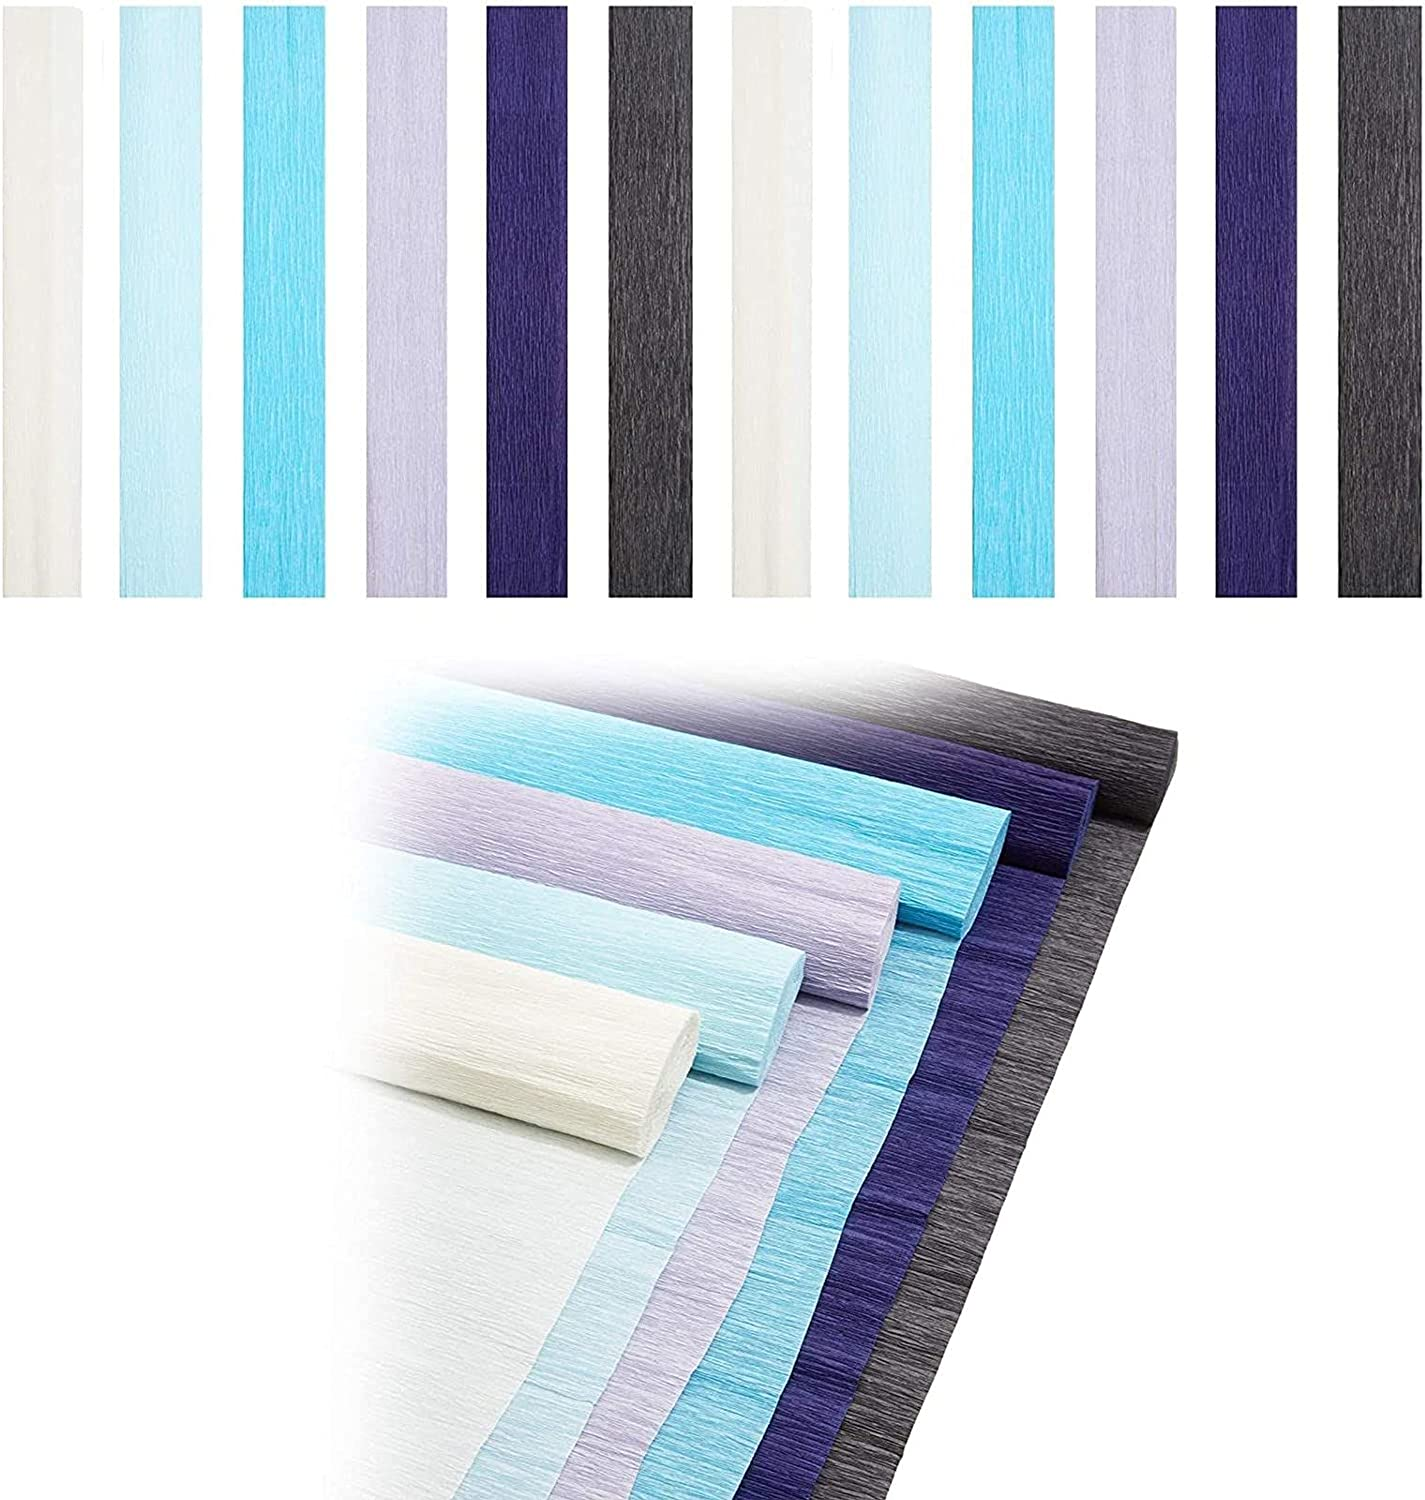 Decorative Crepe Paper Rolls for DIY Crafts, 6 Colors (16.5 in x